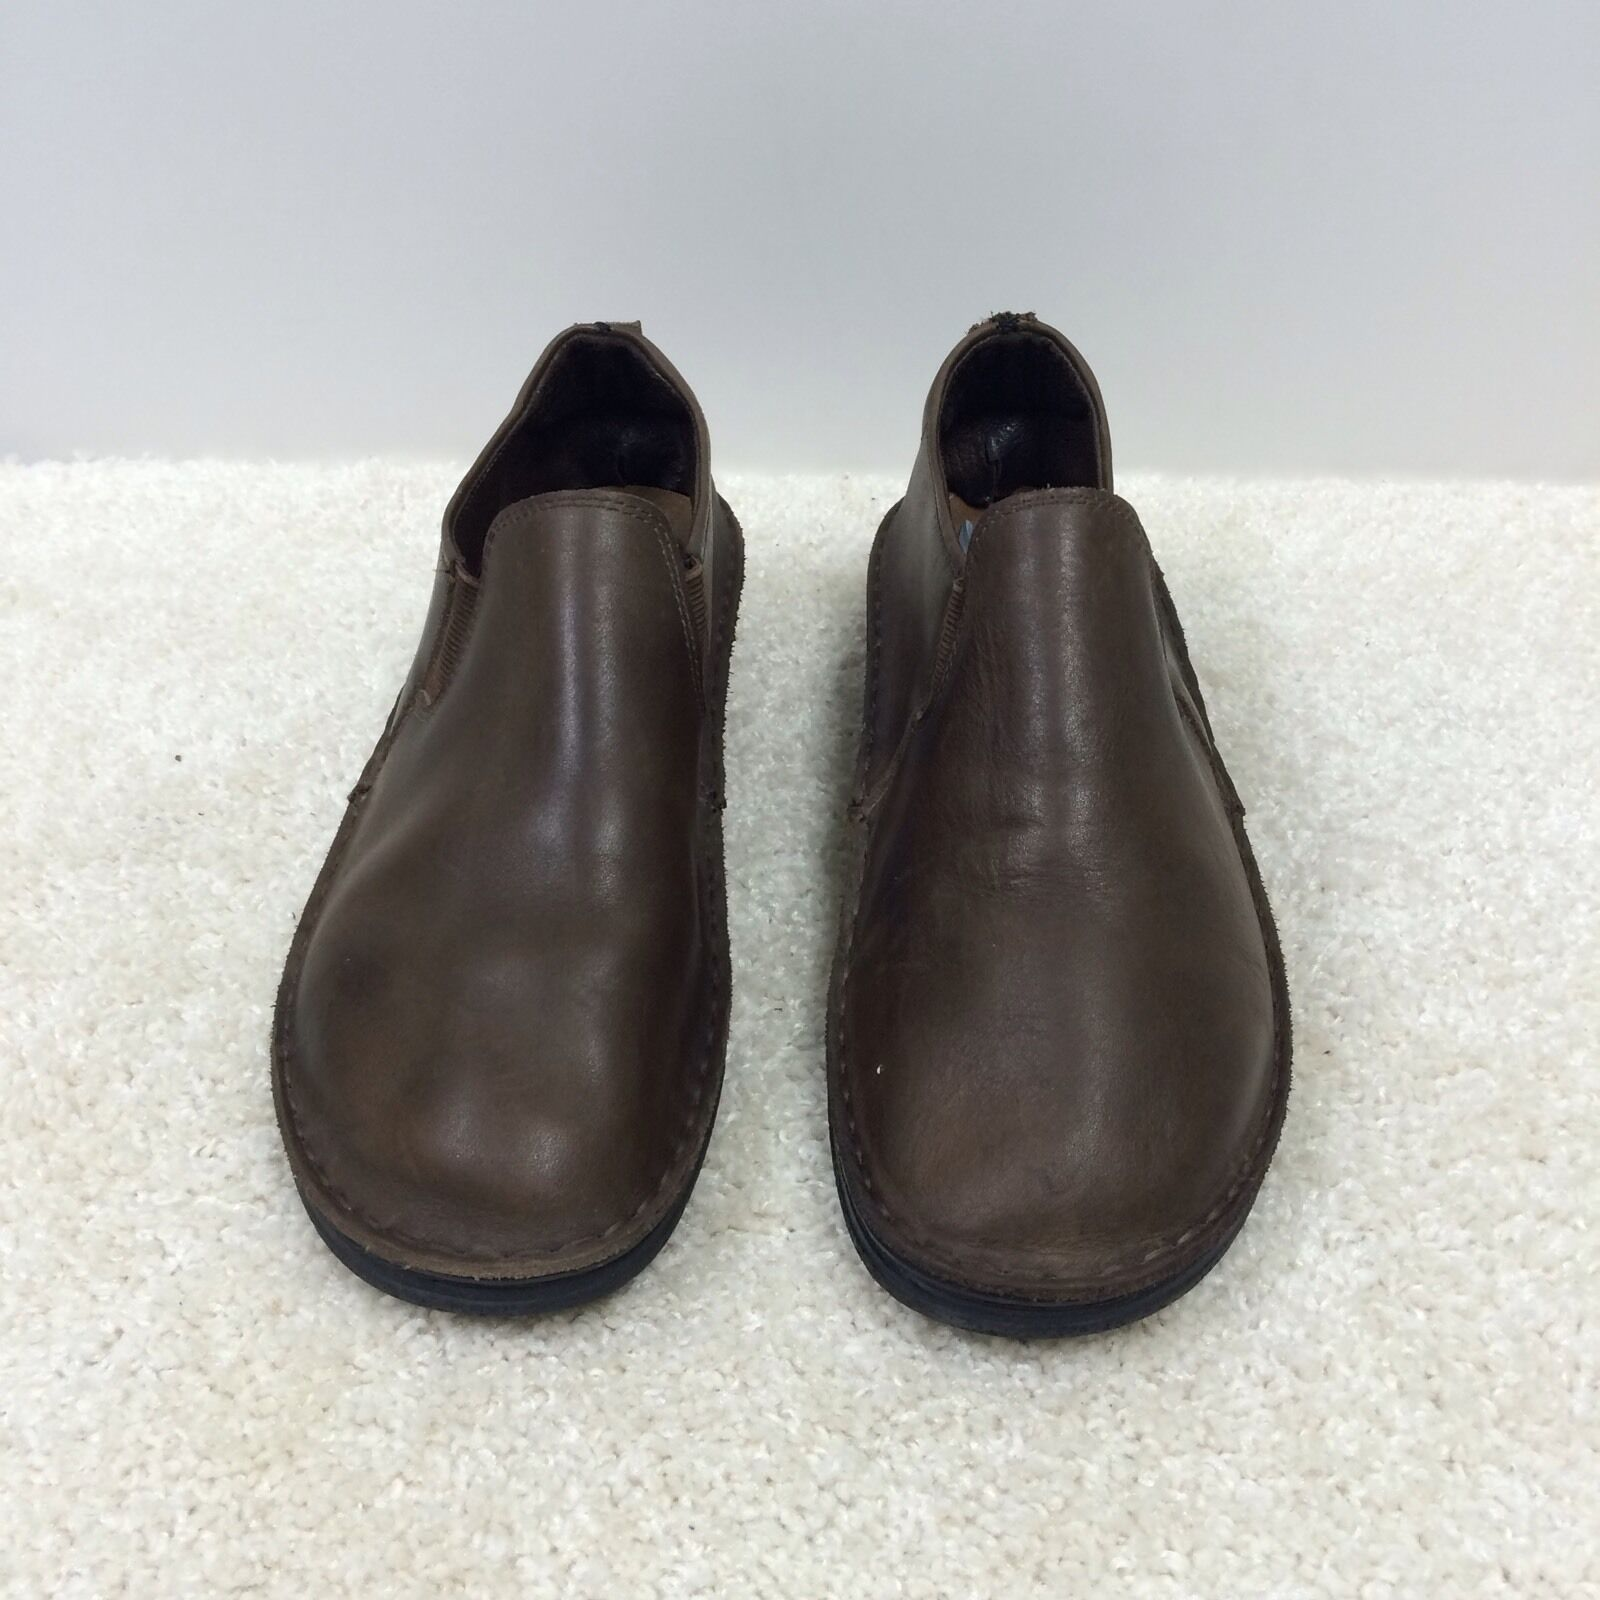 MENS NAOT SZ 41 L 10 M 8 BROWN SHOES LOAFERS SLIP ON ELASTIC LEATHER MADE ISRAEL